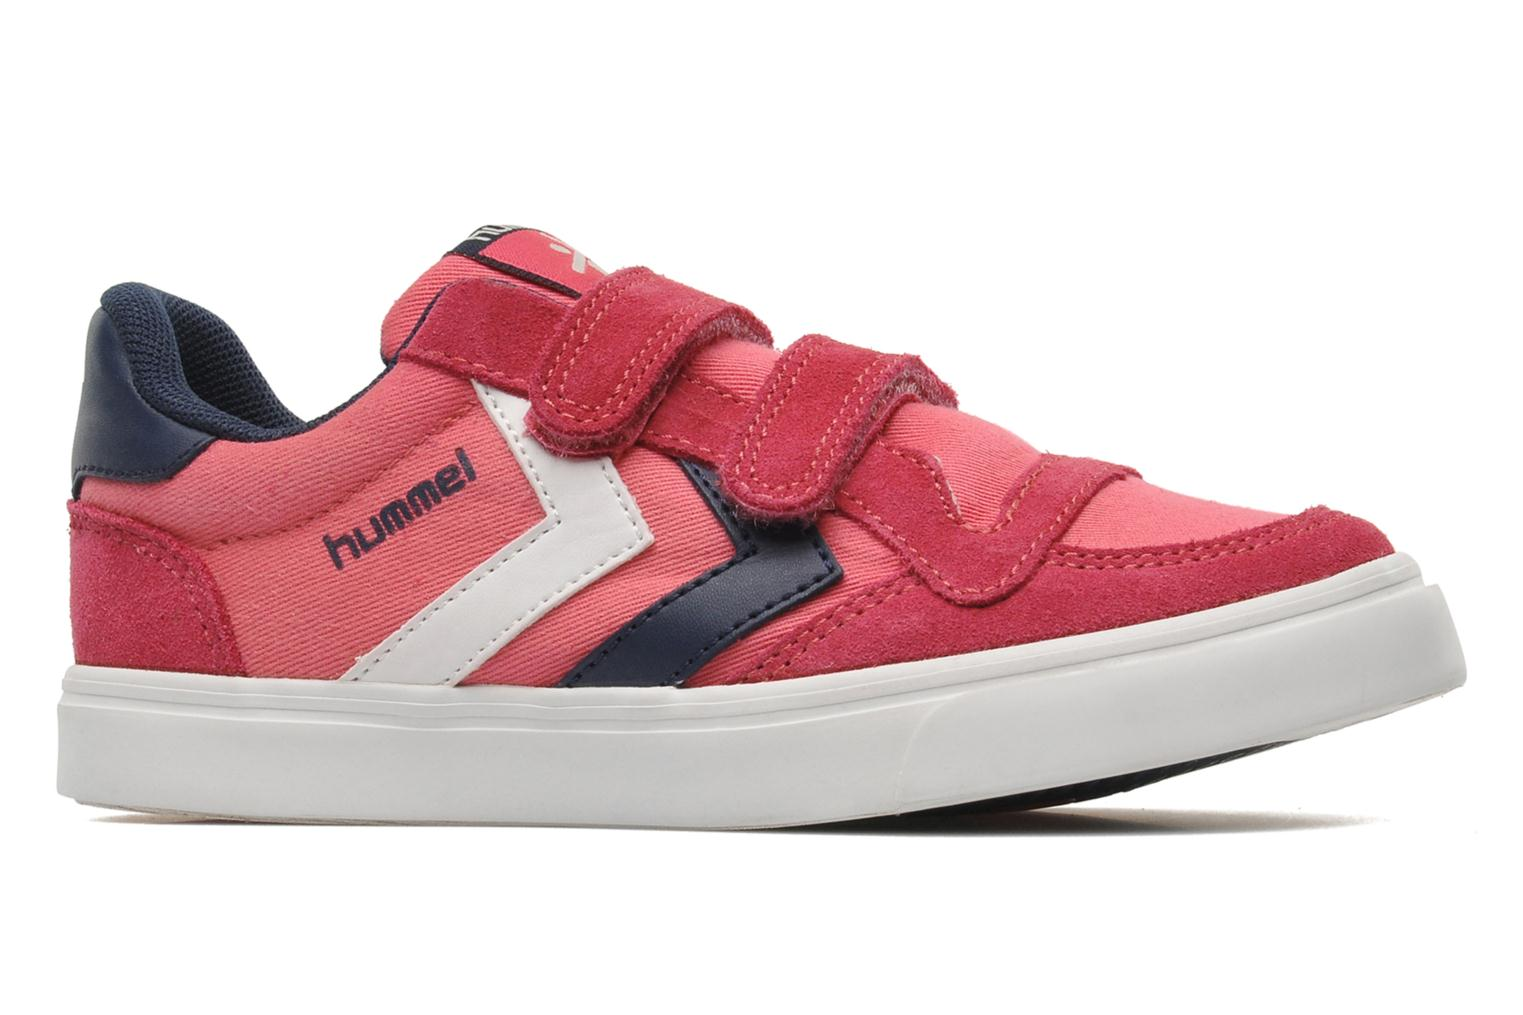 Baskets Hummel STADIL JR CANVAS LO Rose vue derrière